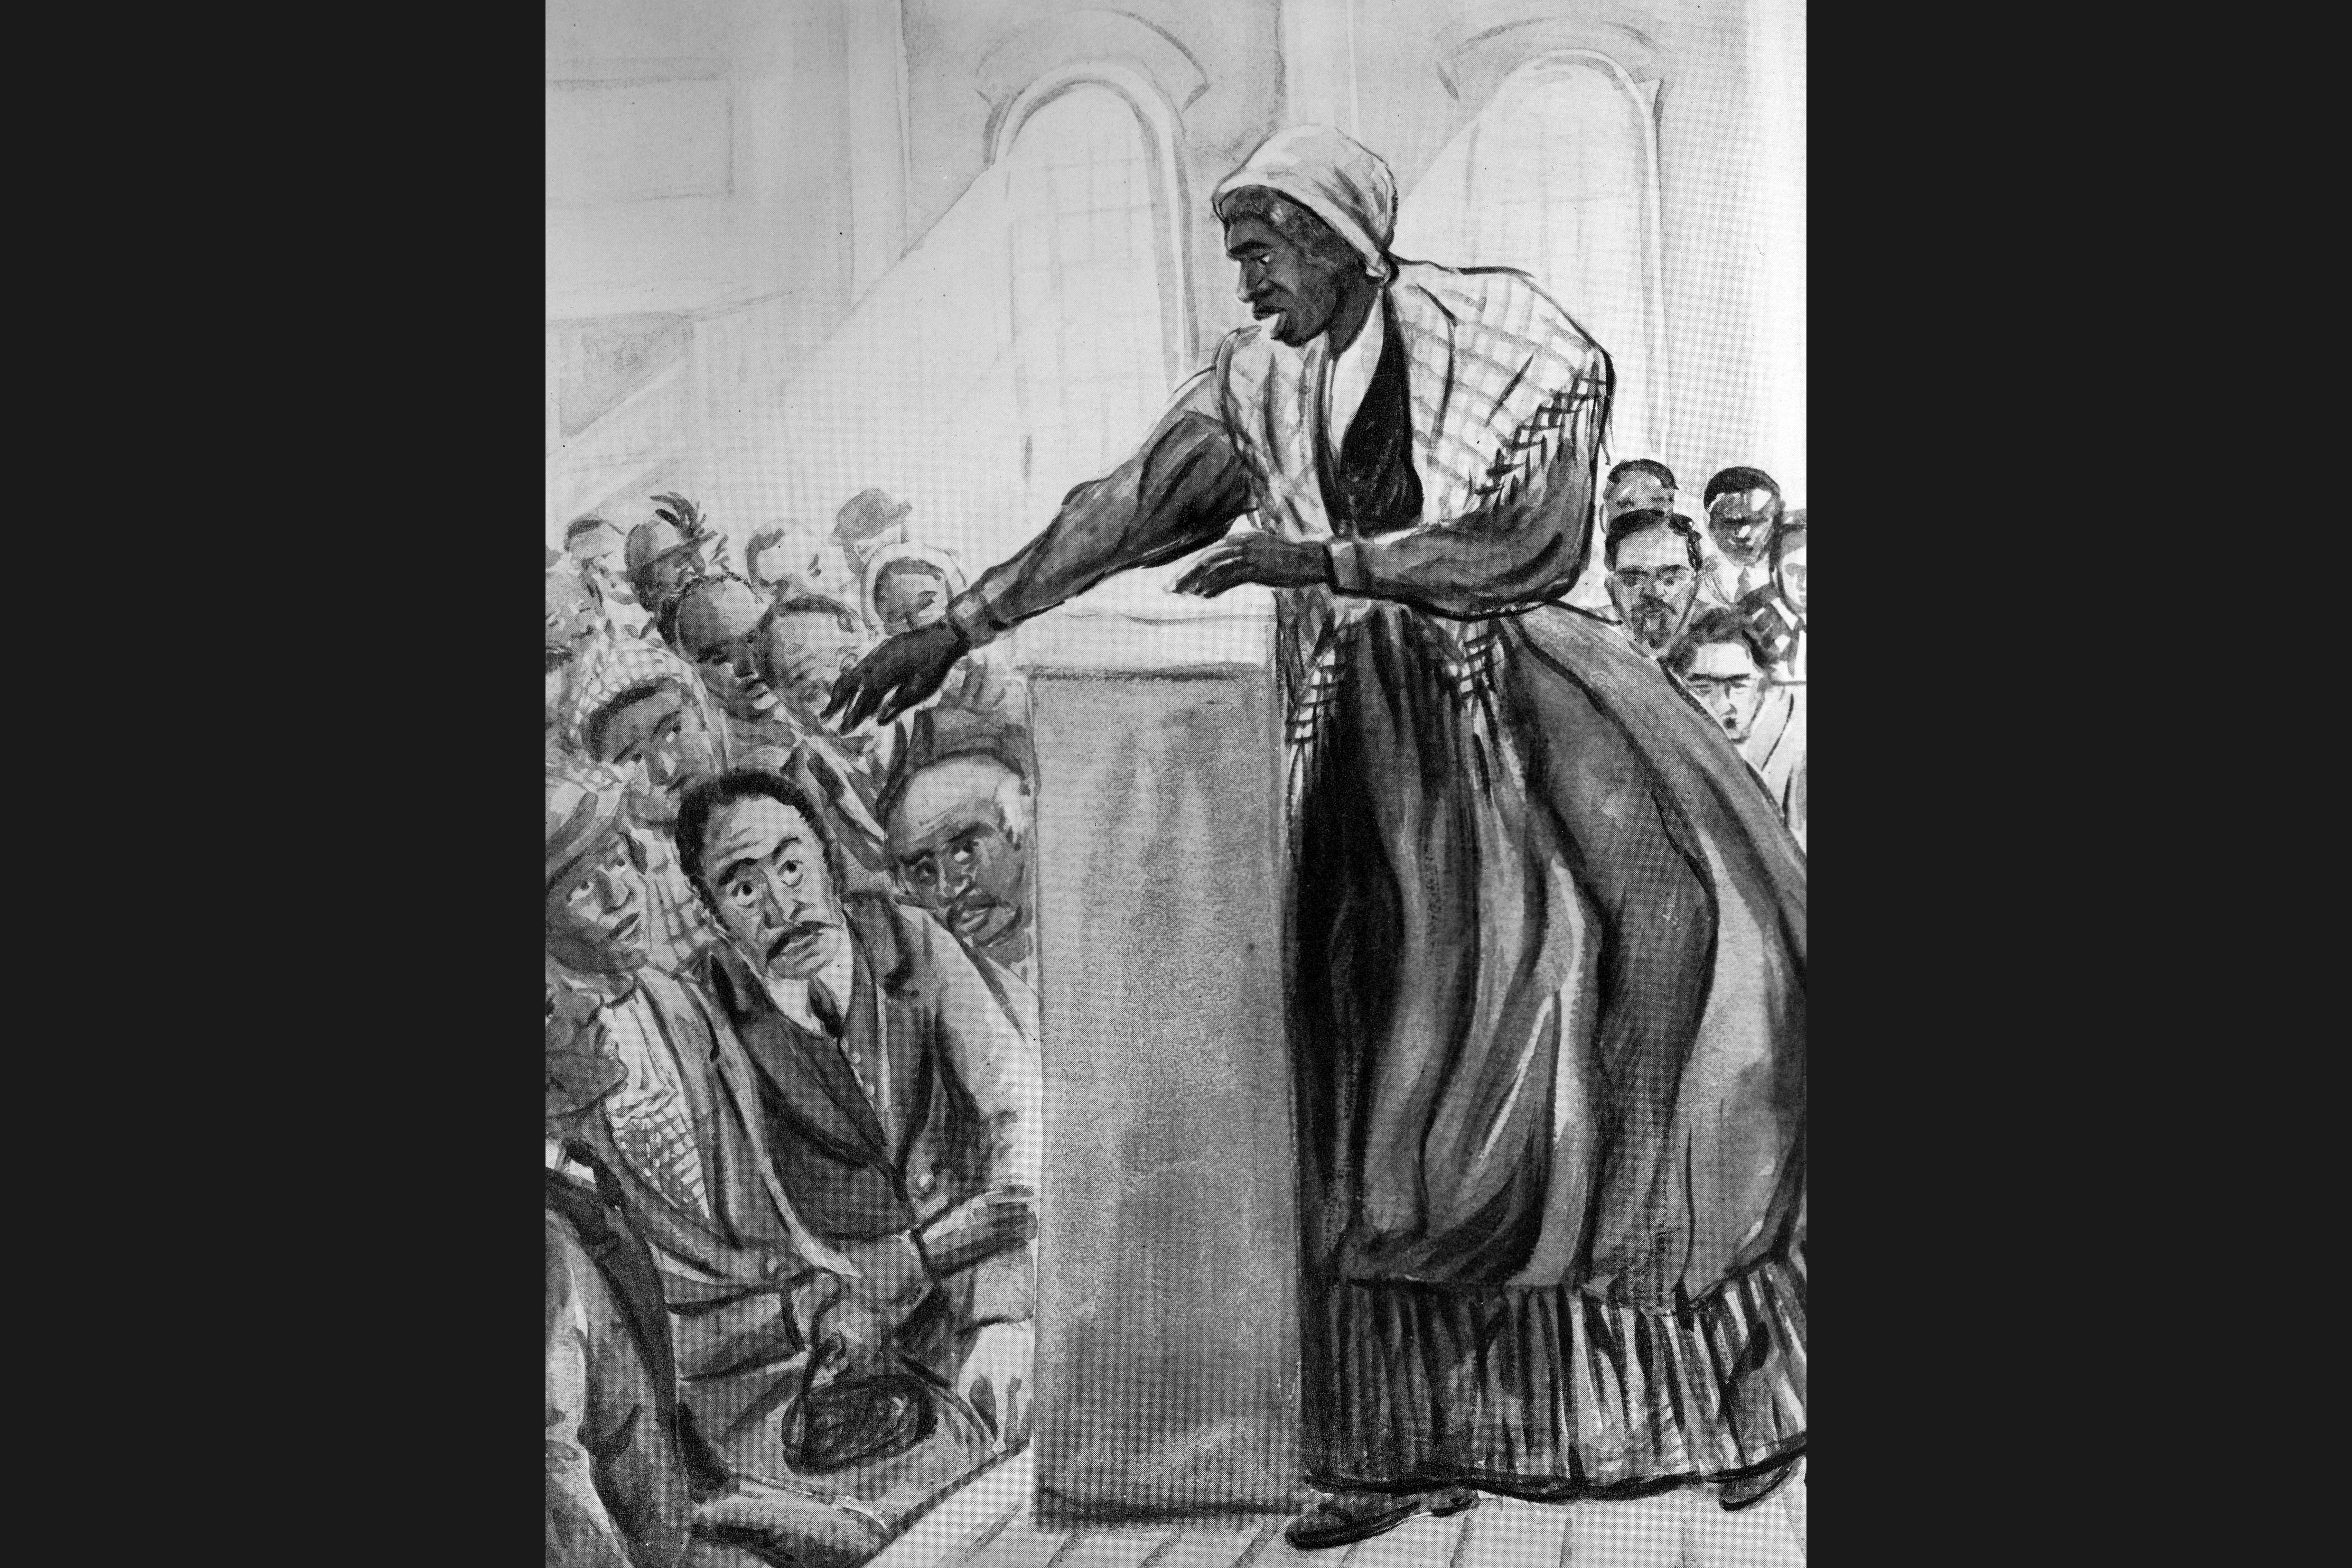 Harriet Tubman lecturing from a stage